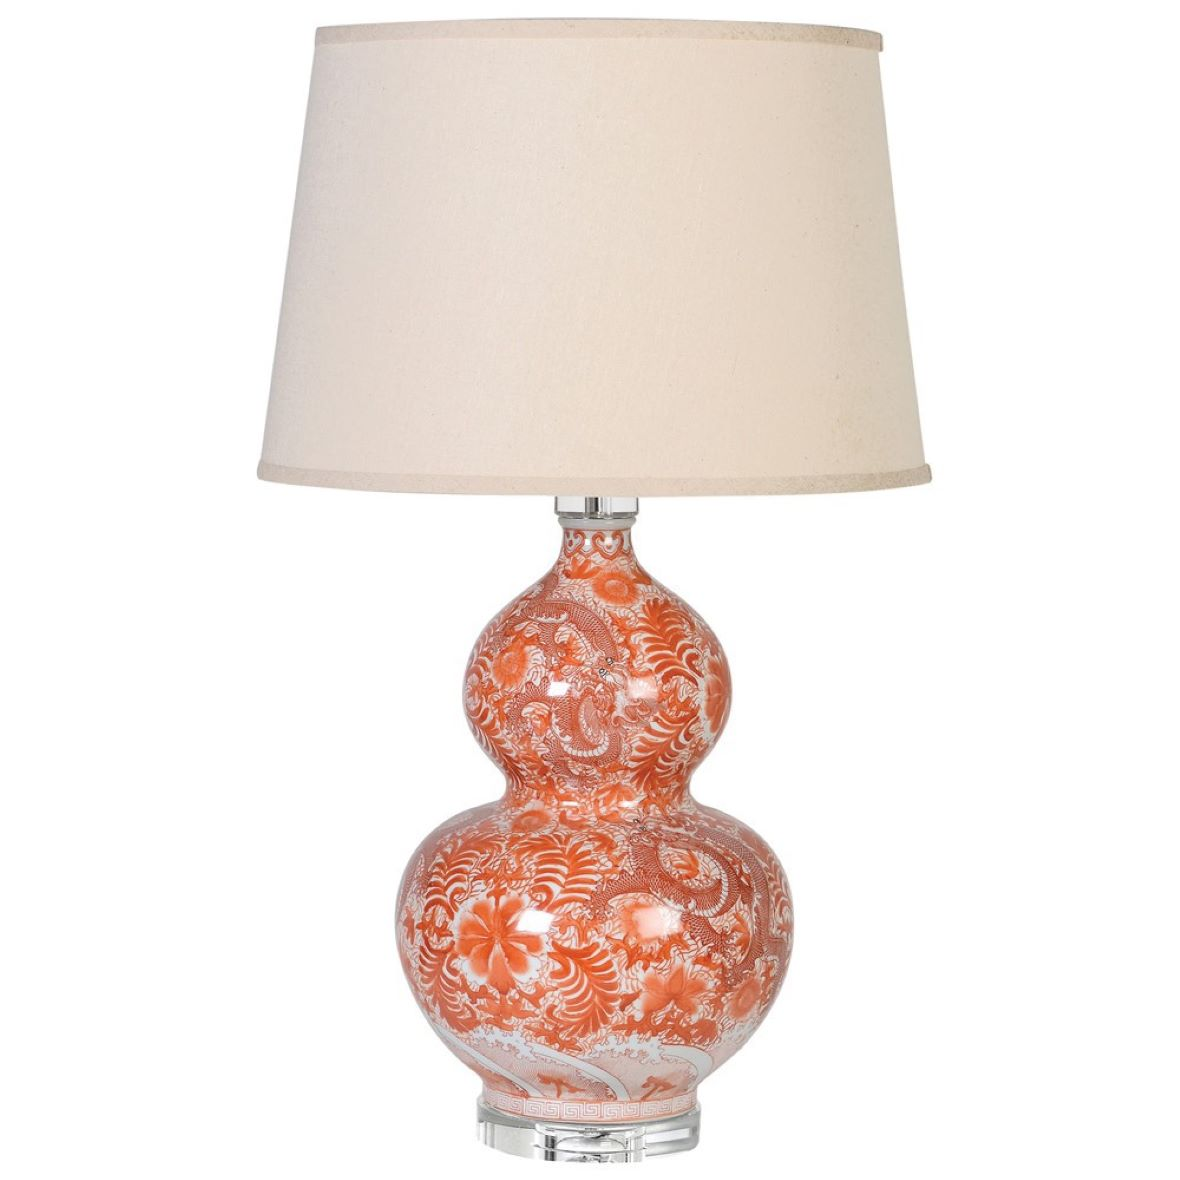 BULBOUS PATTERNED LAMP - HAYGEN